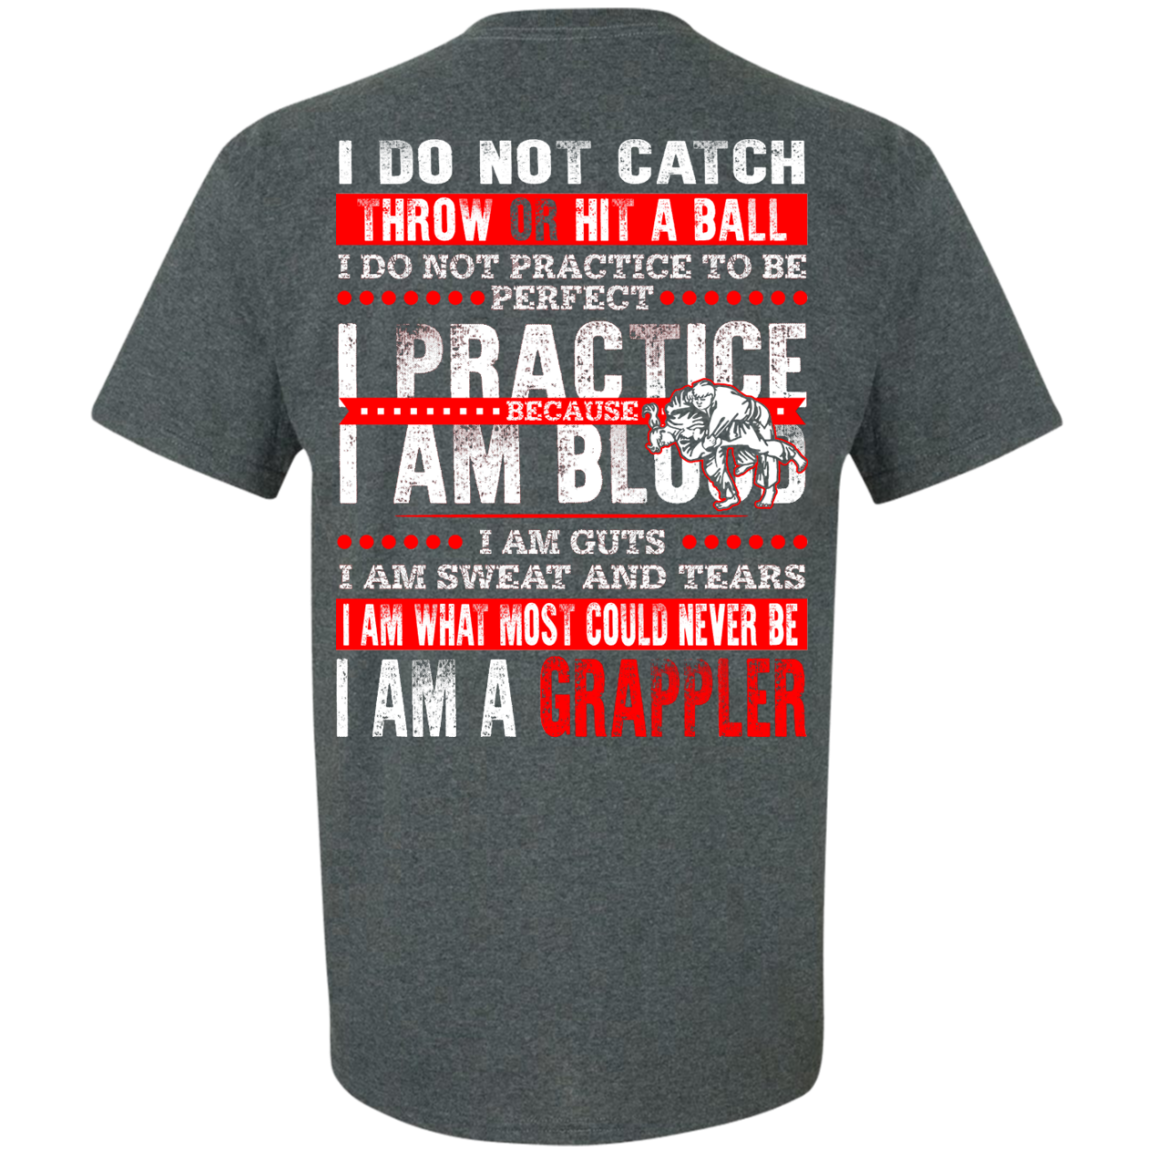 Do not catch ball Grappler